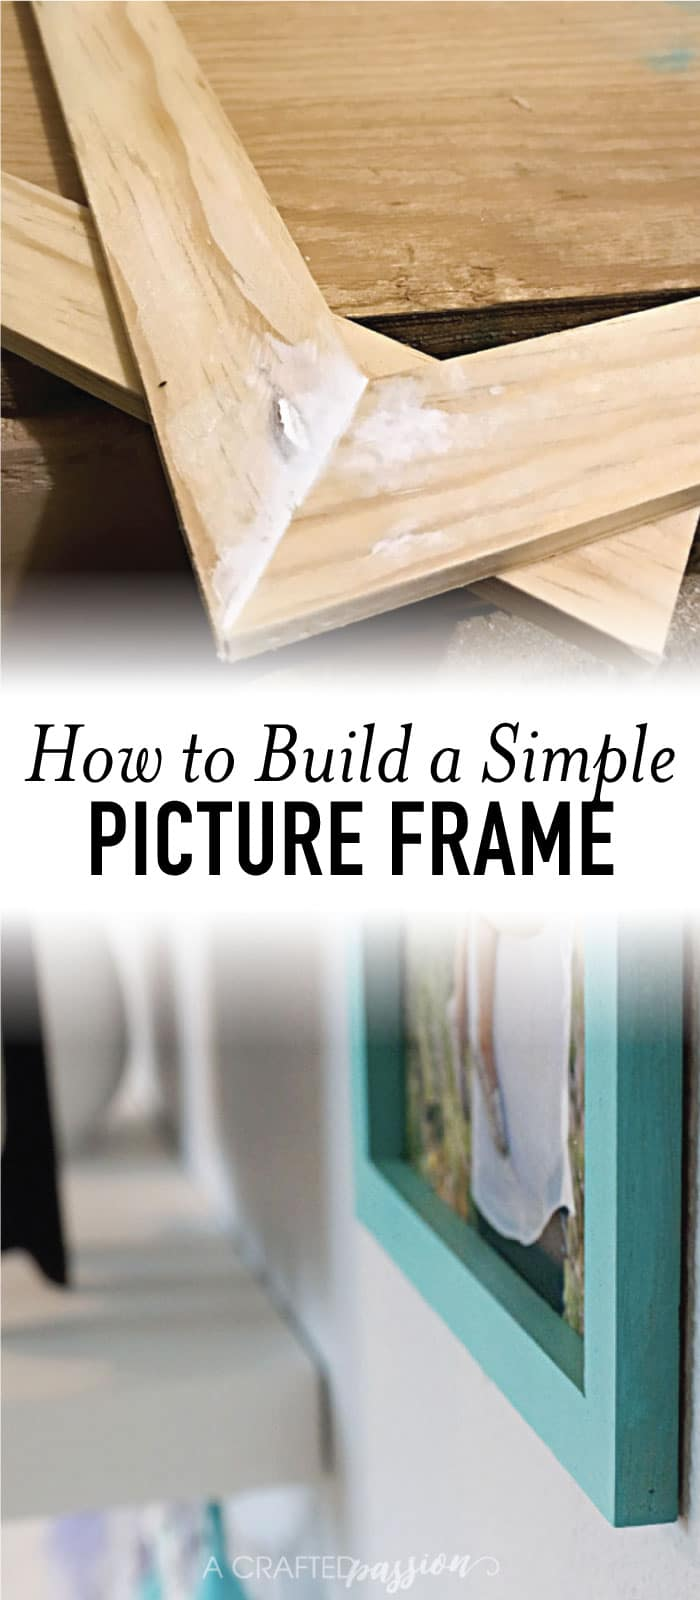 Can't find the perfect sized picture frame to decorate your home? Learn how to build a picture frame with this easy tutorial! #pictureframe #diyproject #build